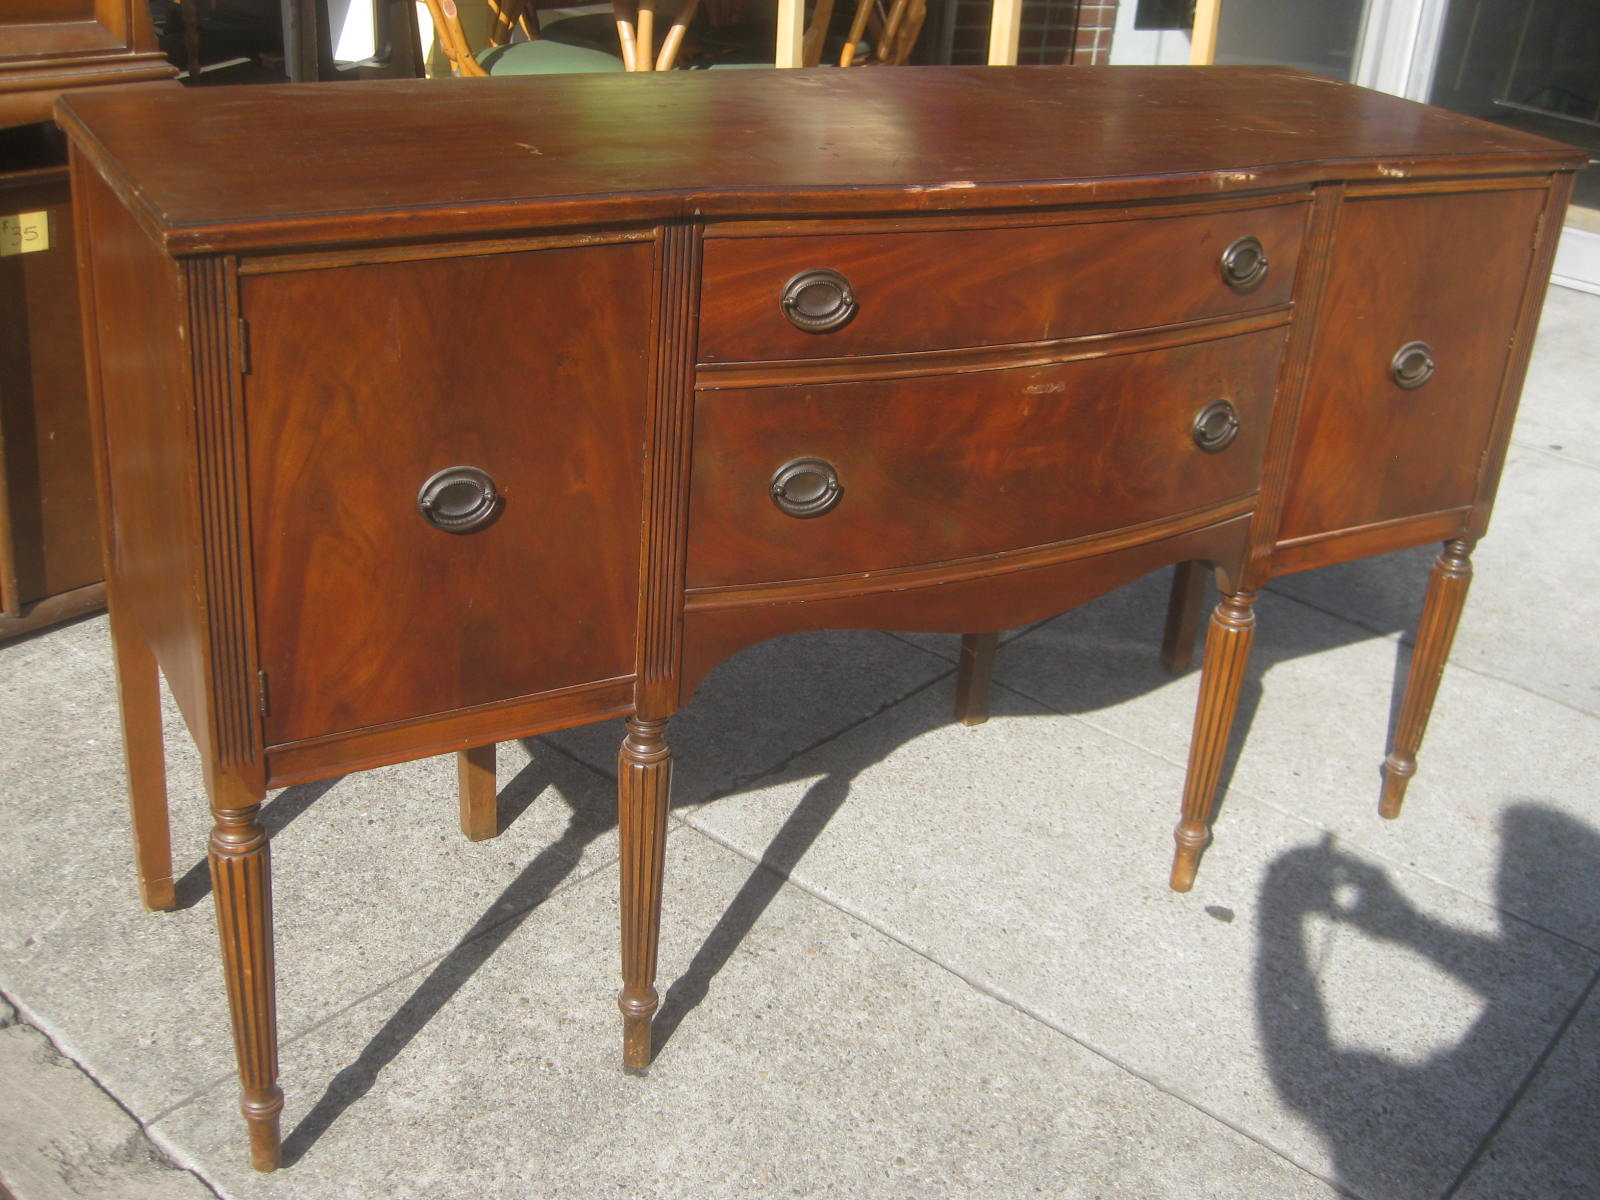 Uhuru Furniture Collectibles Sold Duncan Phyfe Buffet 100